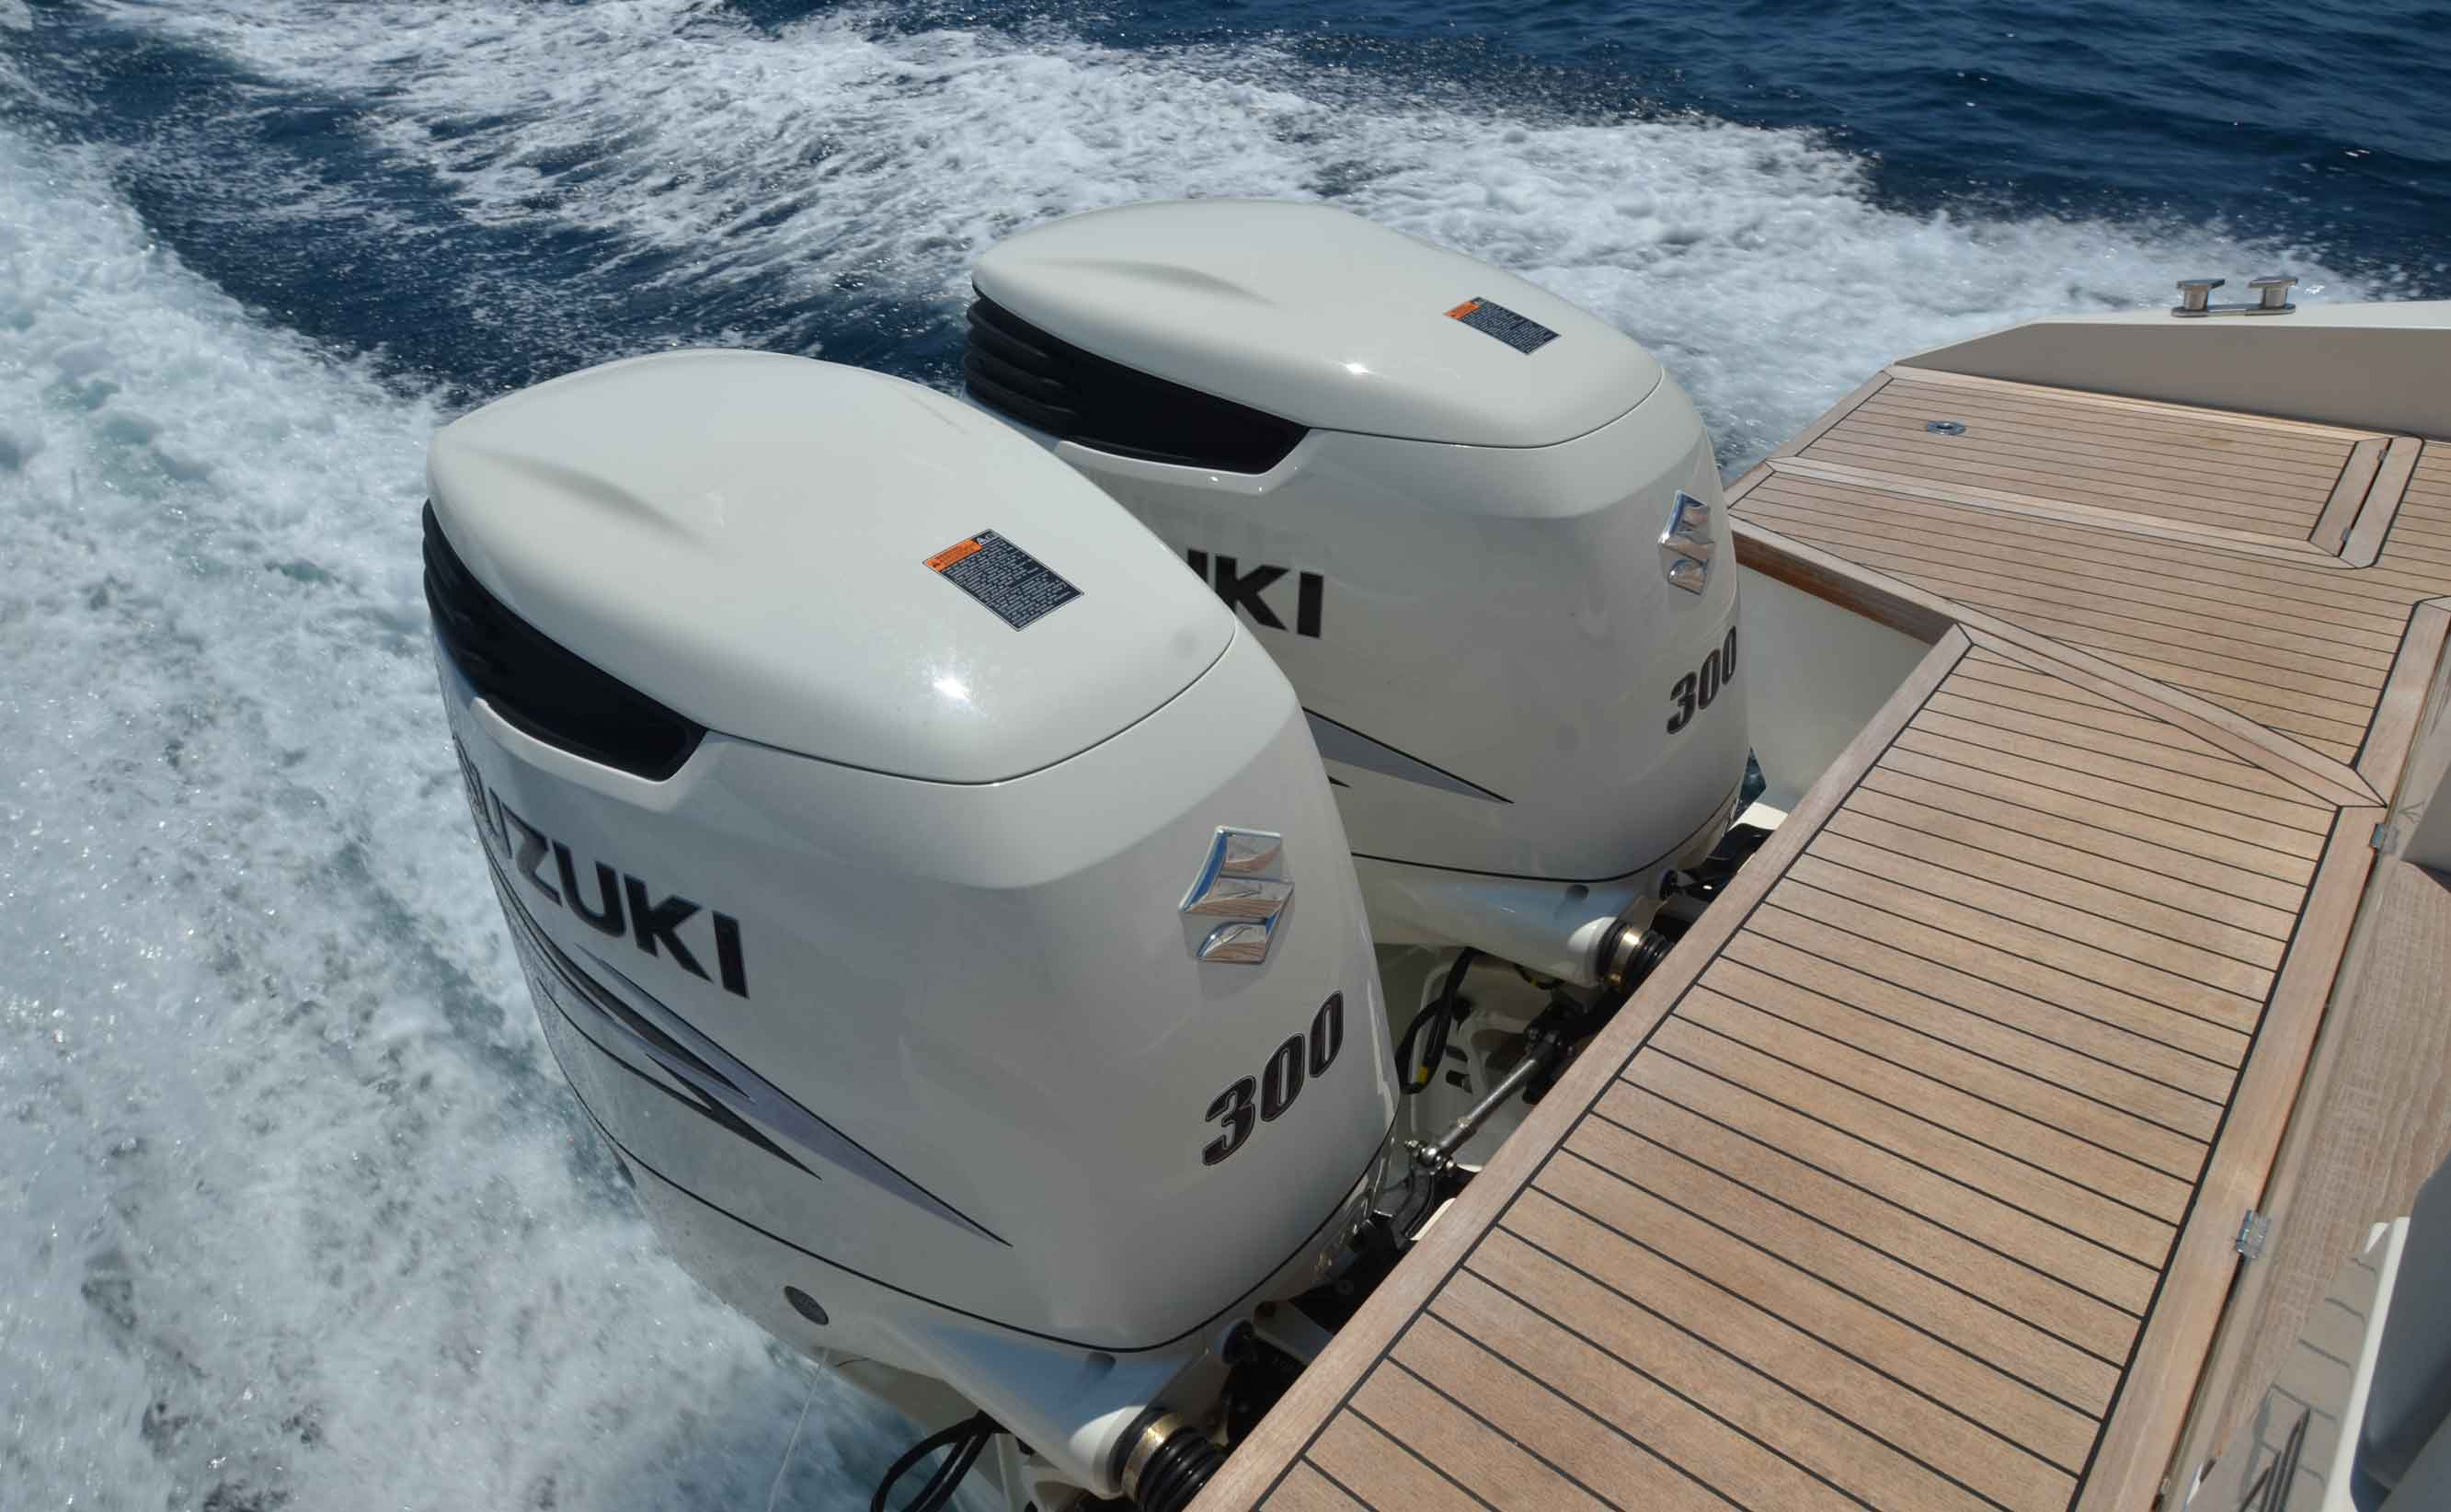 2018 suzuki 300 outboard.  outboard test boatmag on 2018 suzuki 300 outboard